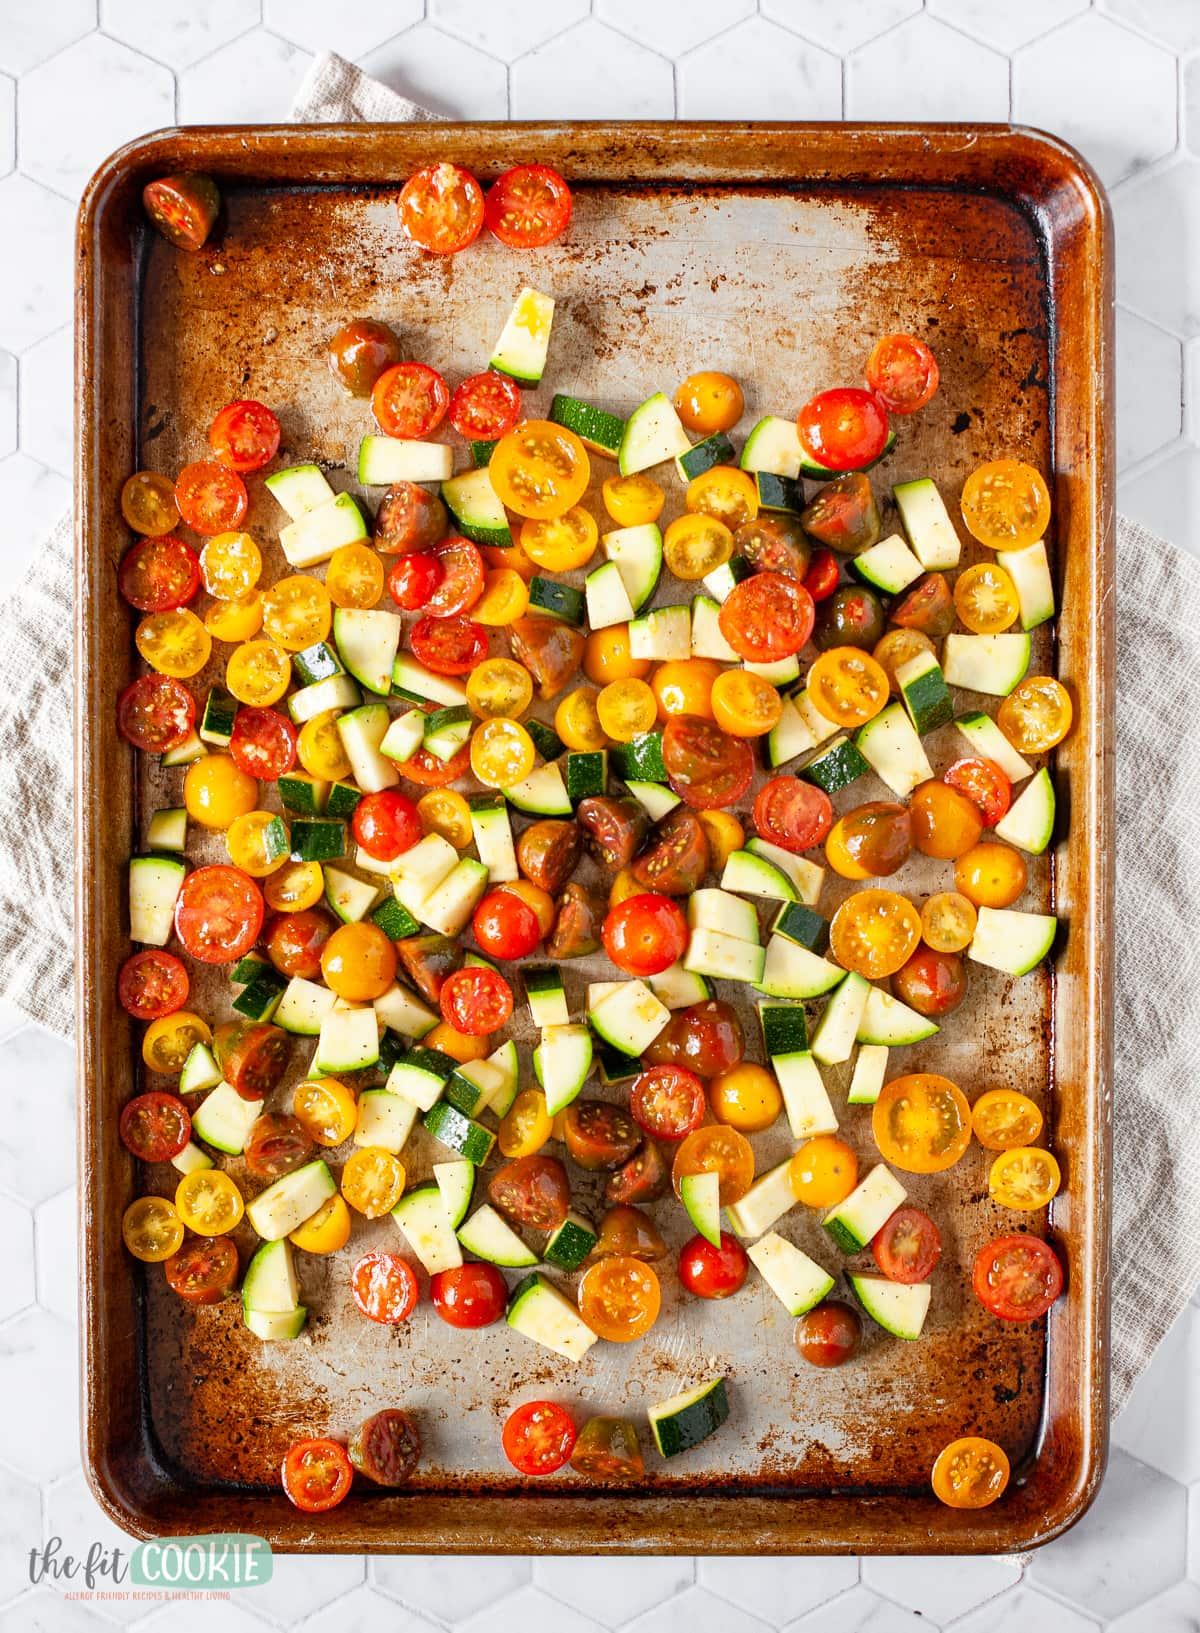 sheet pan with chopped vegetables on it